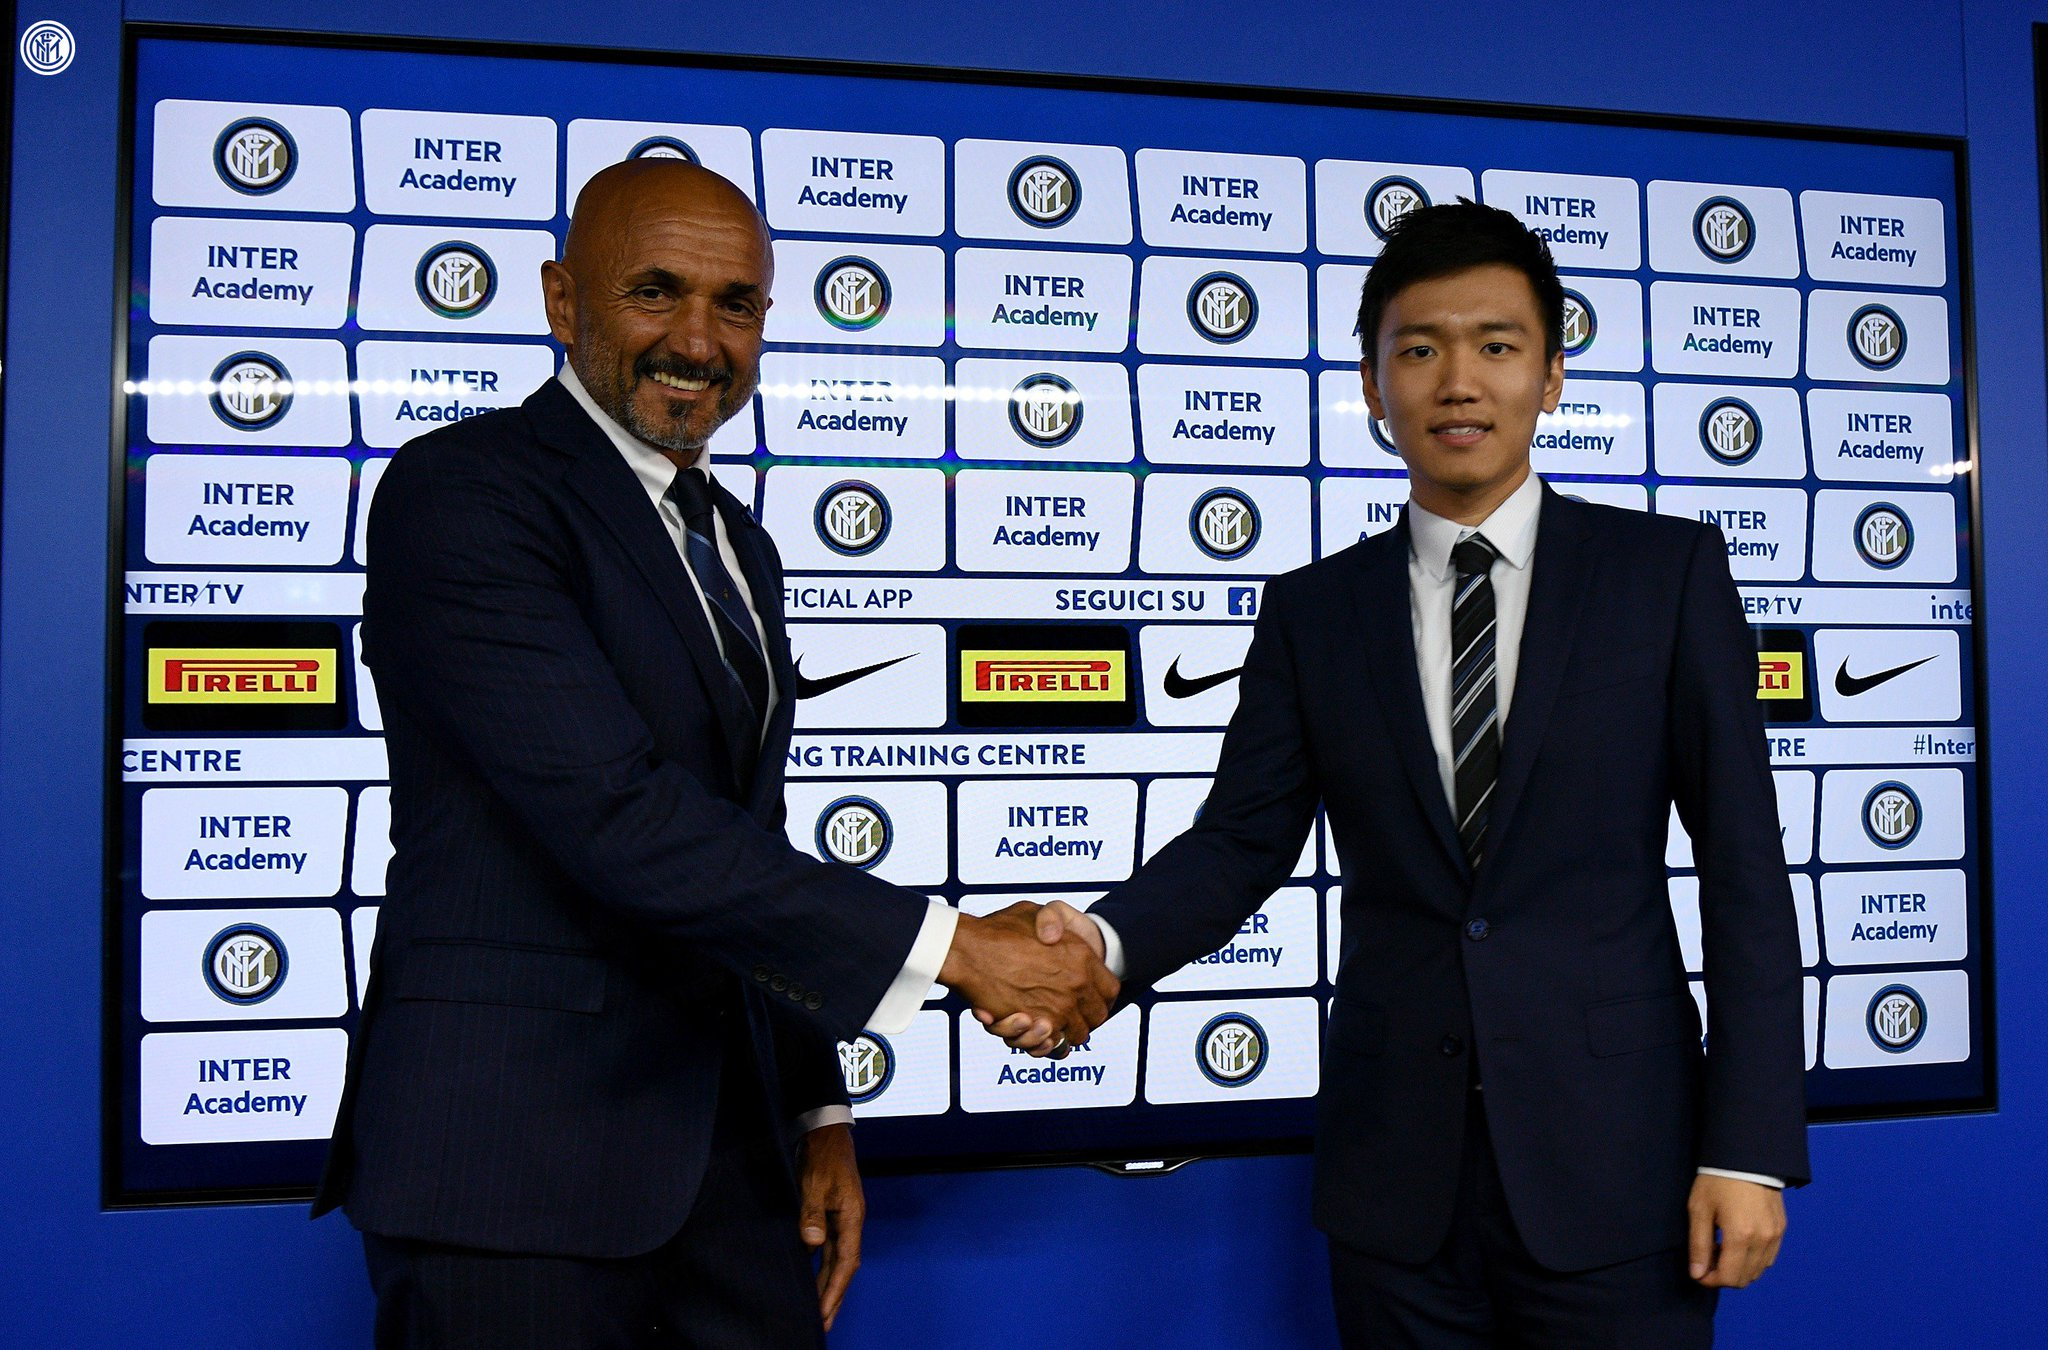 Official FC Inter thread 18/19 - Page 11 DkkWCGSX4AEao8n